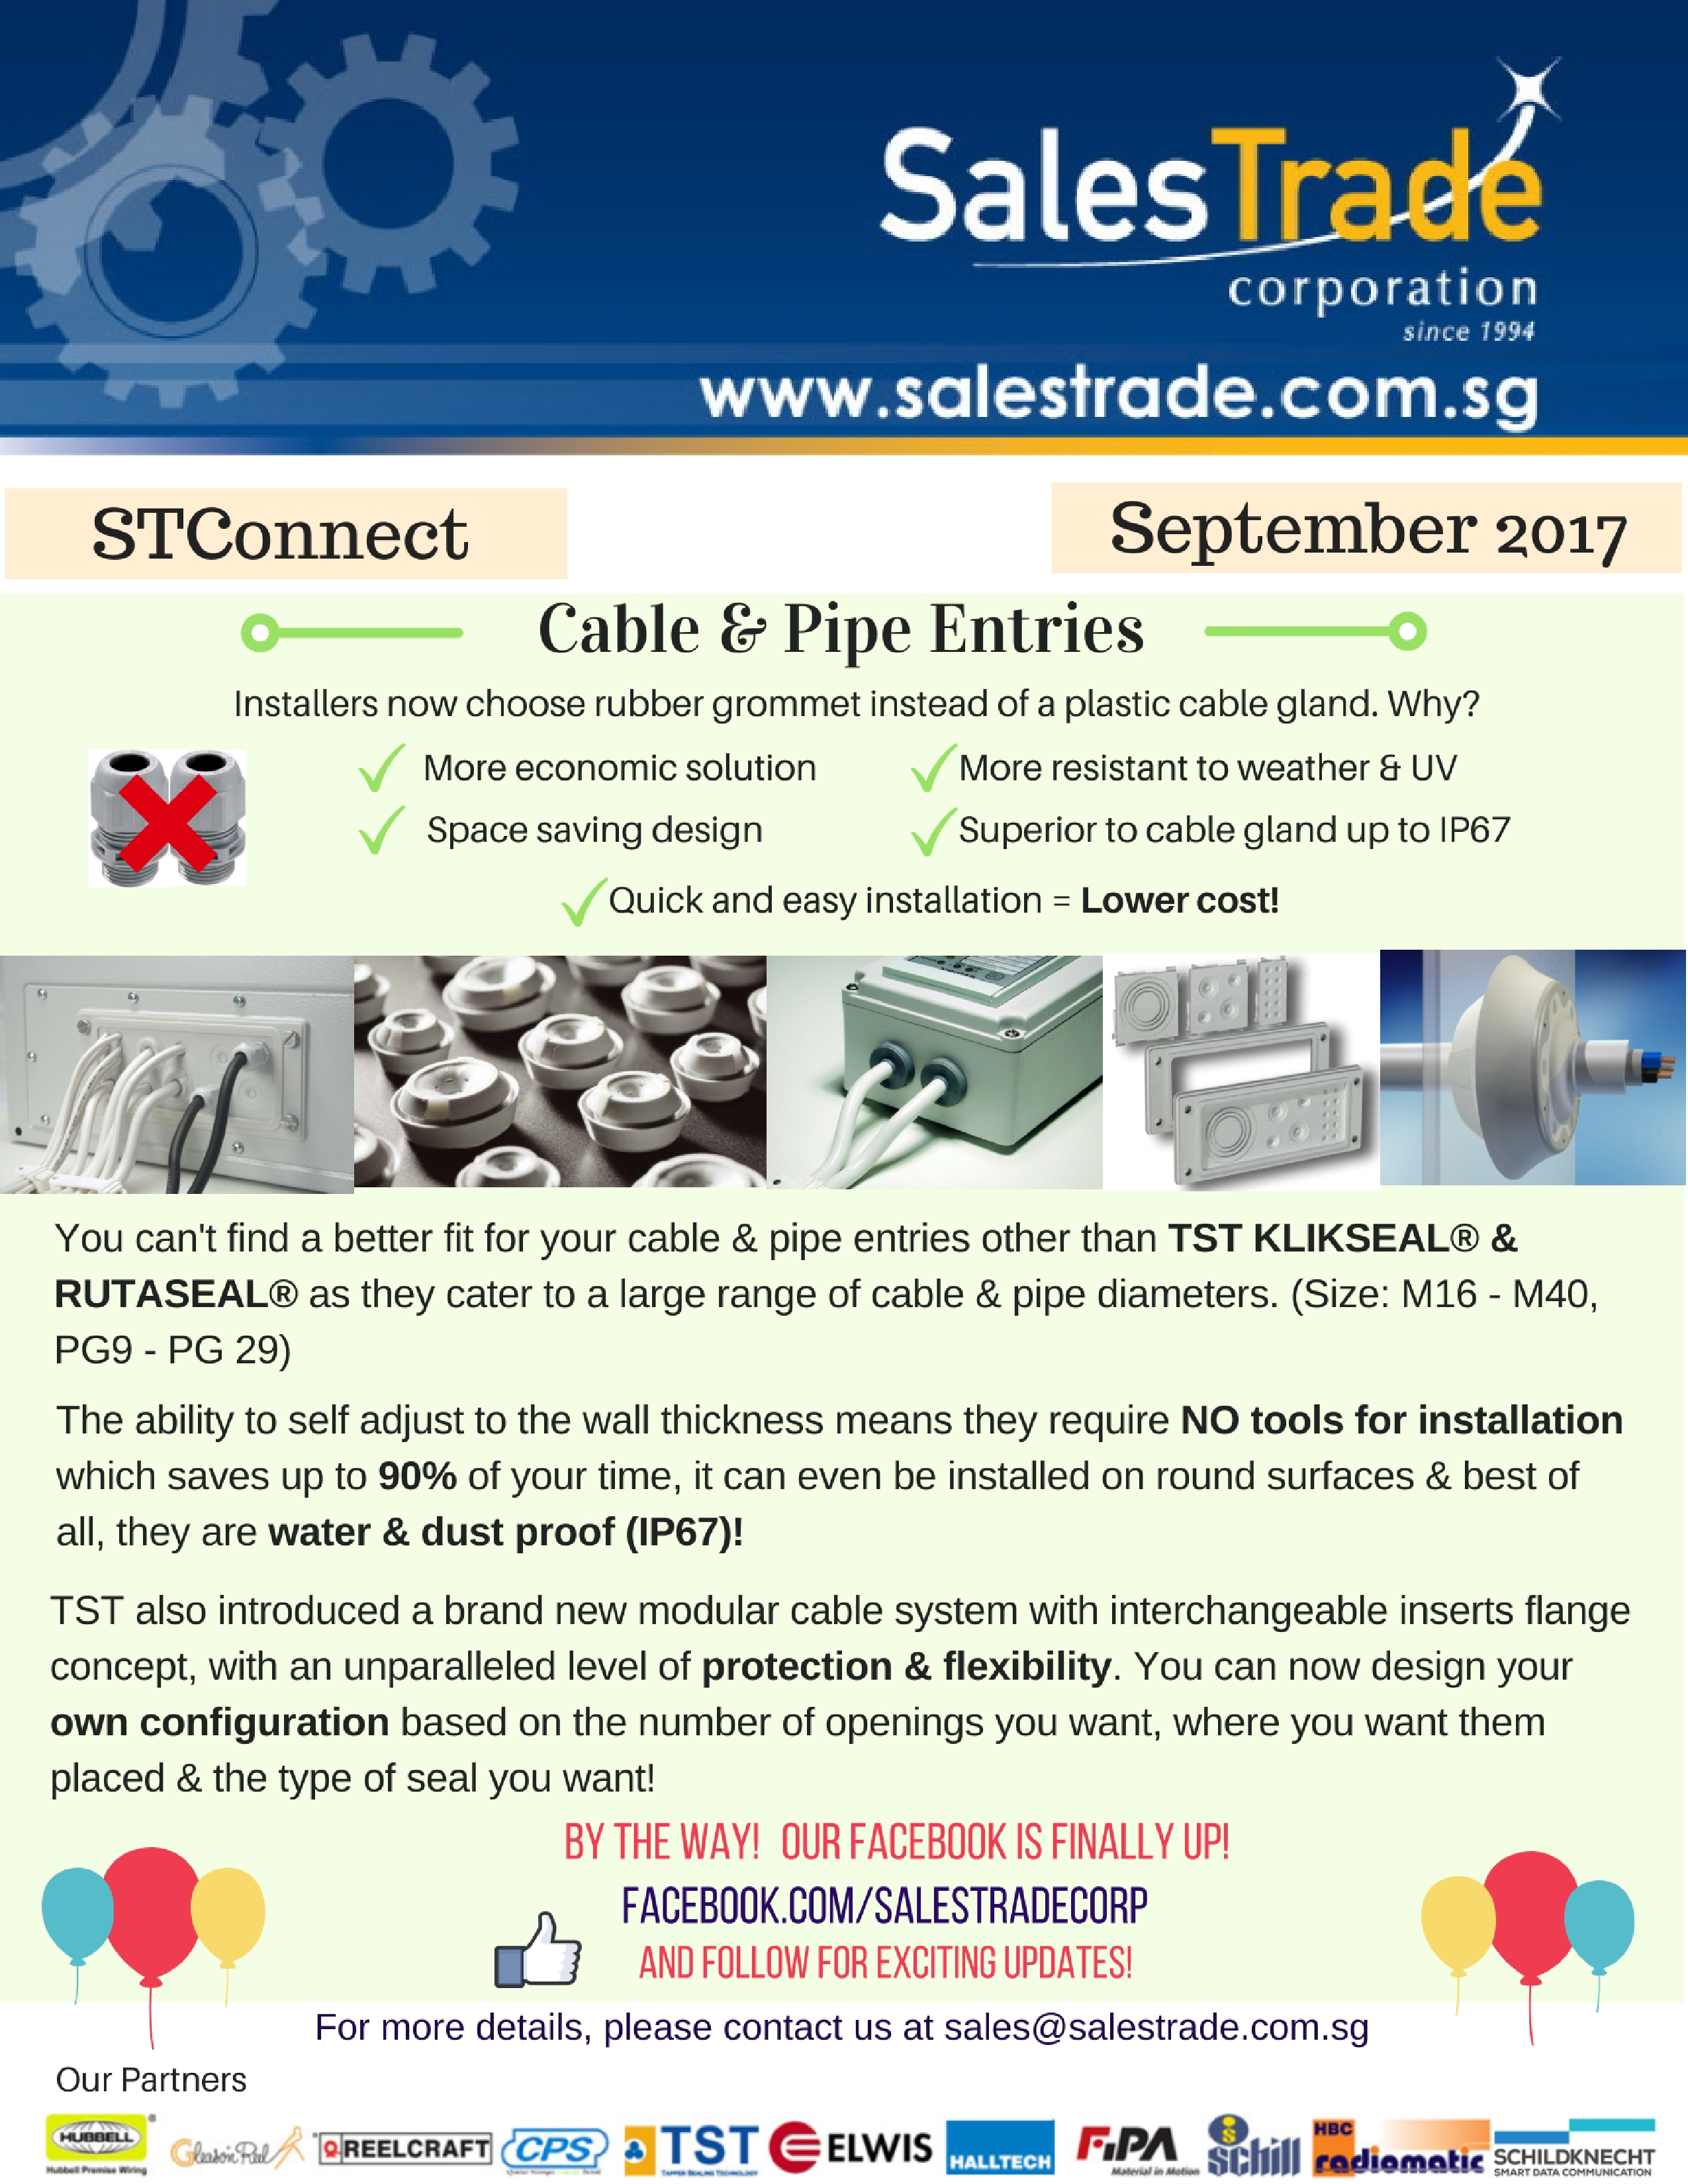 STConnect - Sept 2017